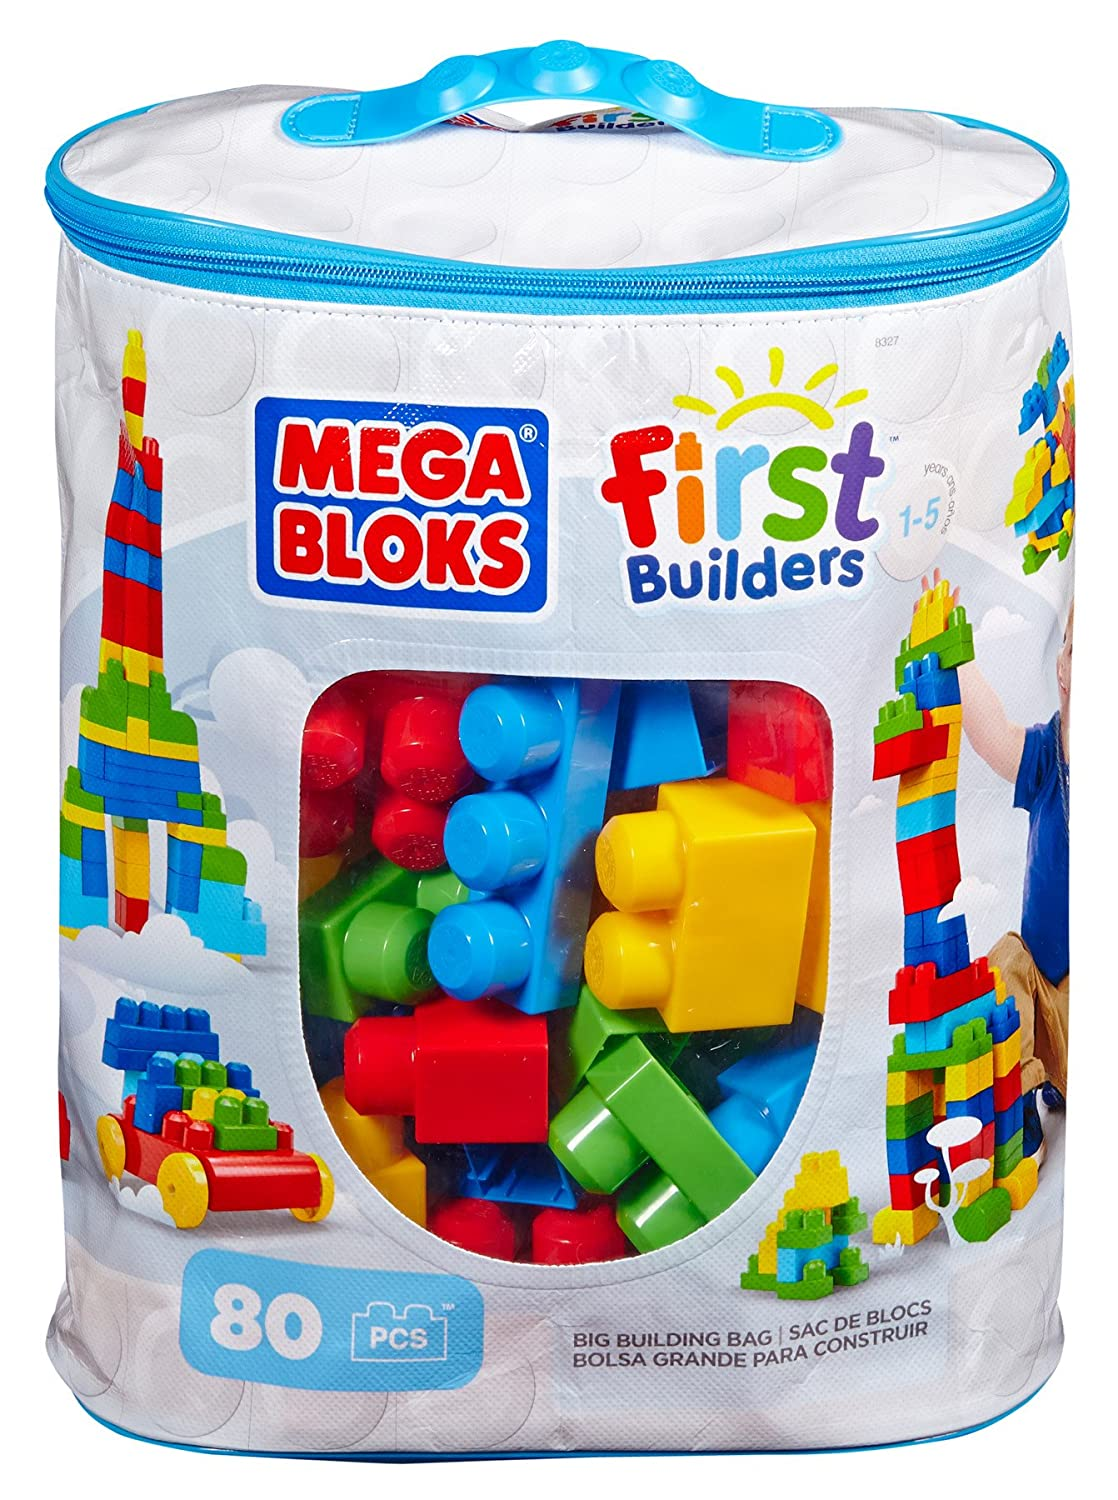 Best Imaginative Toys : Best toys for kids the imaginative